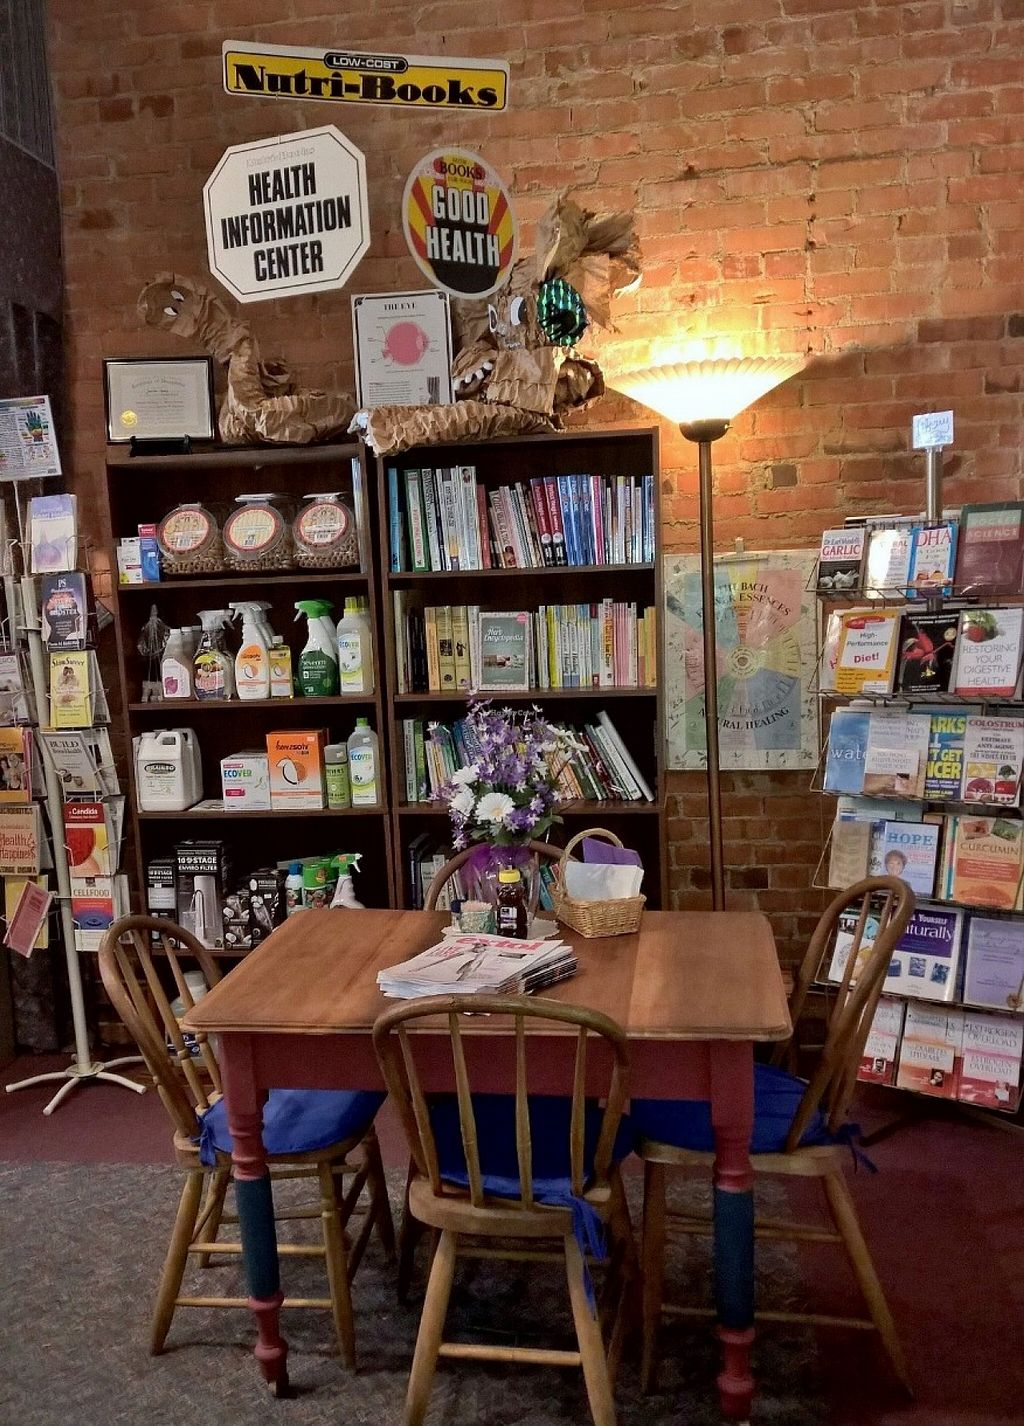 "Photo of Sunshine House Health Food Store & Cafe  by <a href=""/members/profile/Sunshine%20House"">Sunshine House</a> <br/>Seating complete with health library for browsing! Enjoy a cup of tea and educate yourself! <br/> December 19, 2015  - <a href='/contact/abuse/image/66942/129069'>Report</a>"